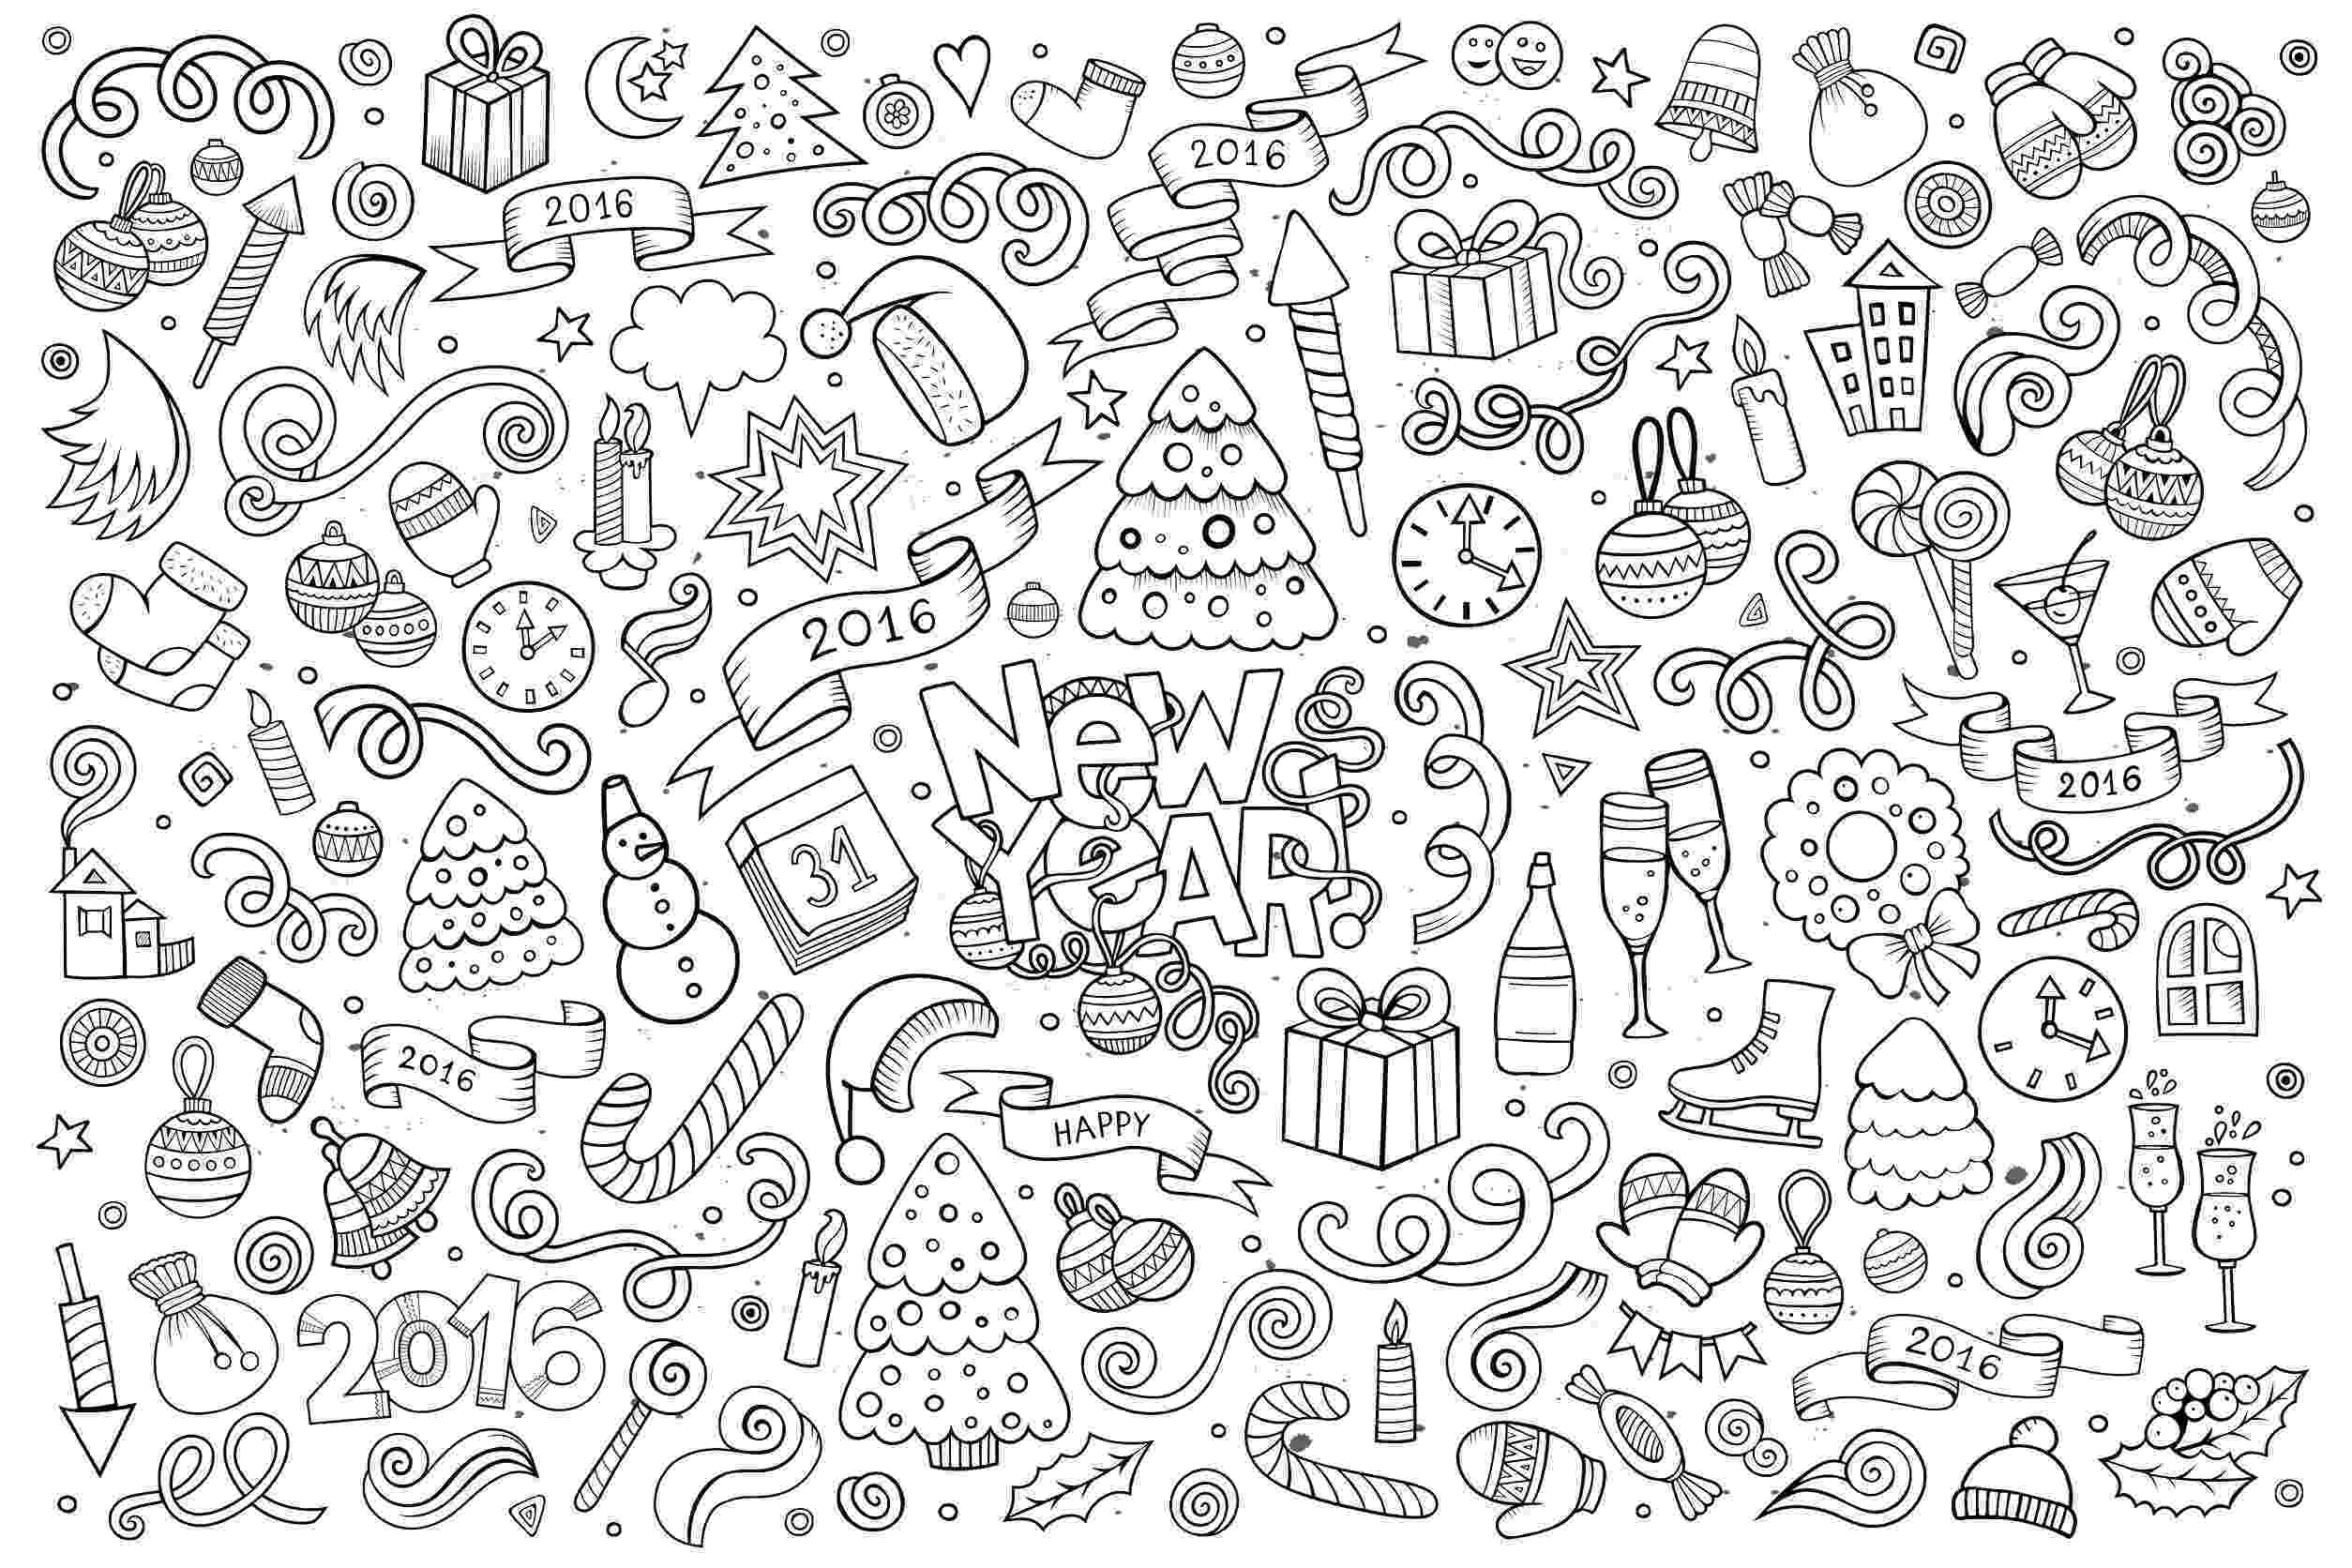 doodle art free printables doodle art free printable coloring pages for kids printables free doodle art